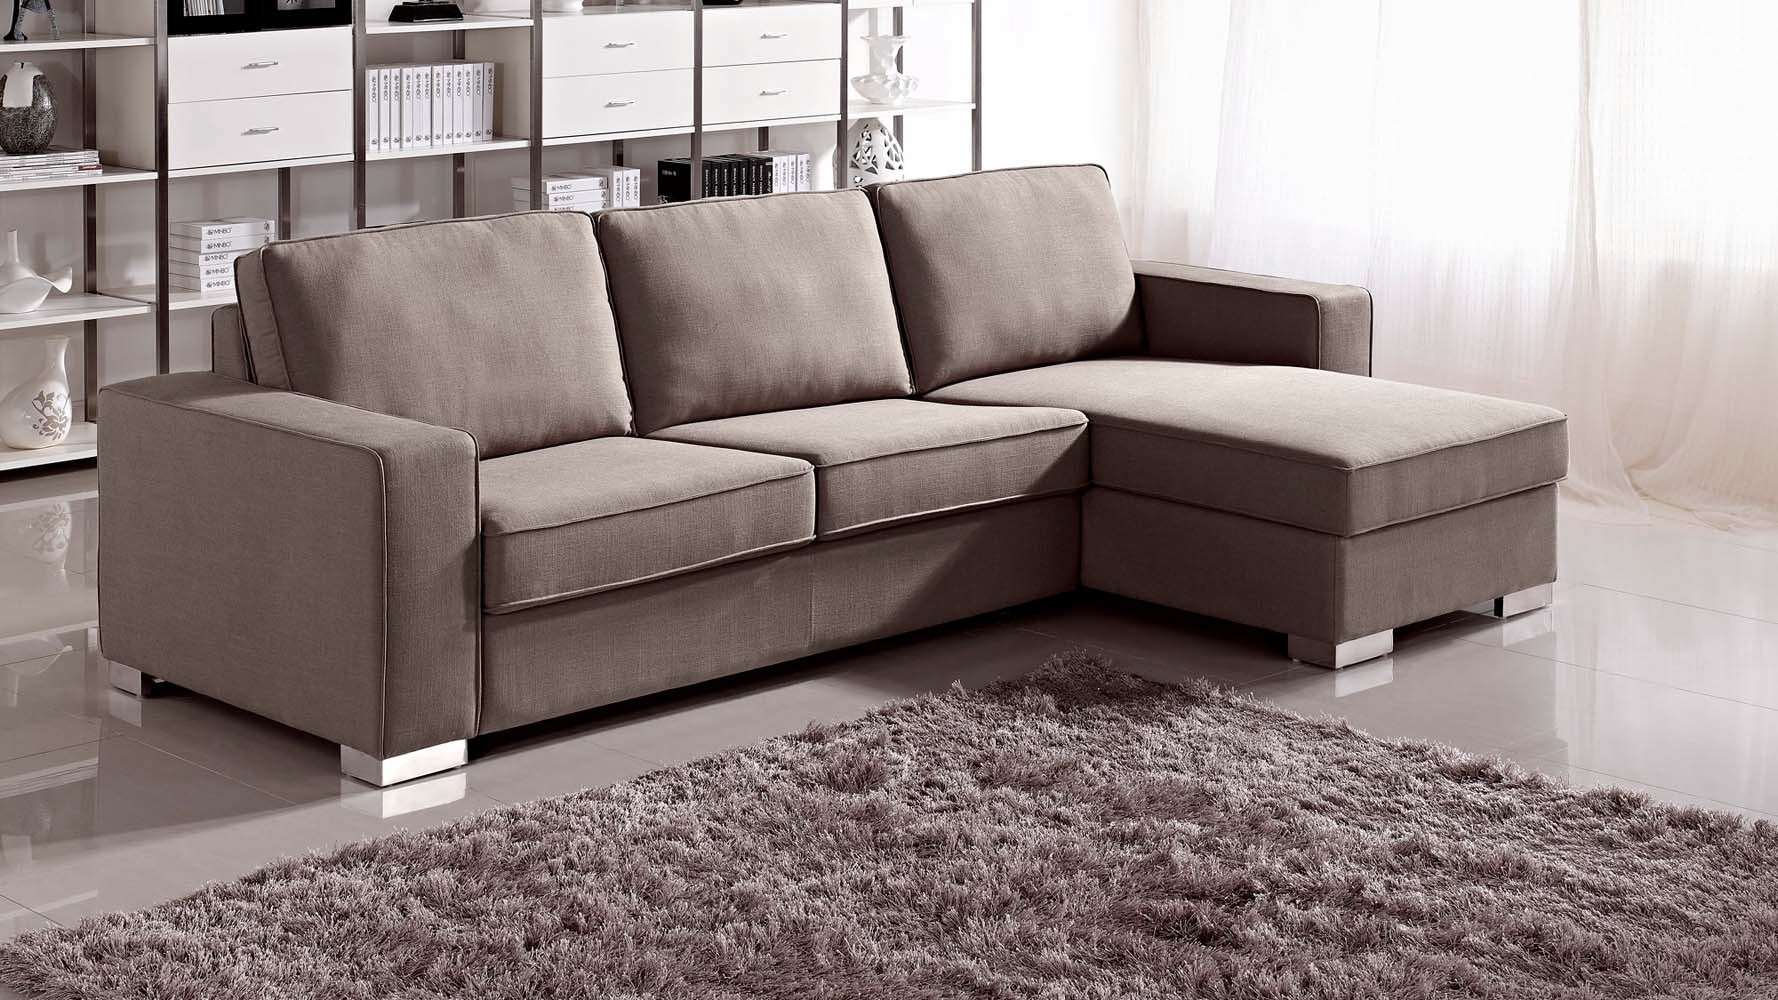 Current L Shaped Sectional Sleeper Sofas With Regard To Innovative Sofa Sleeper Sectionals Beautiful Interior Design Style (View 6 of 15)